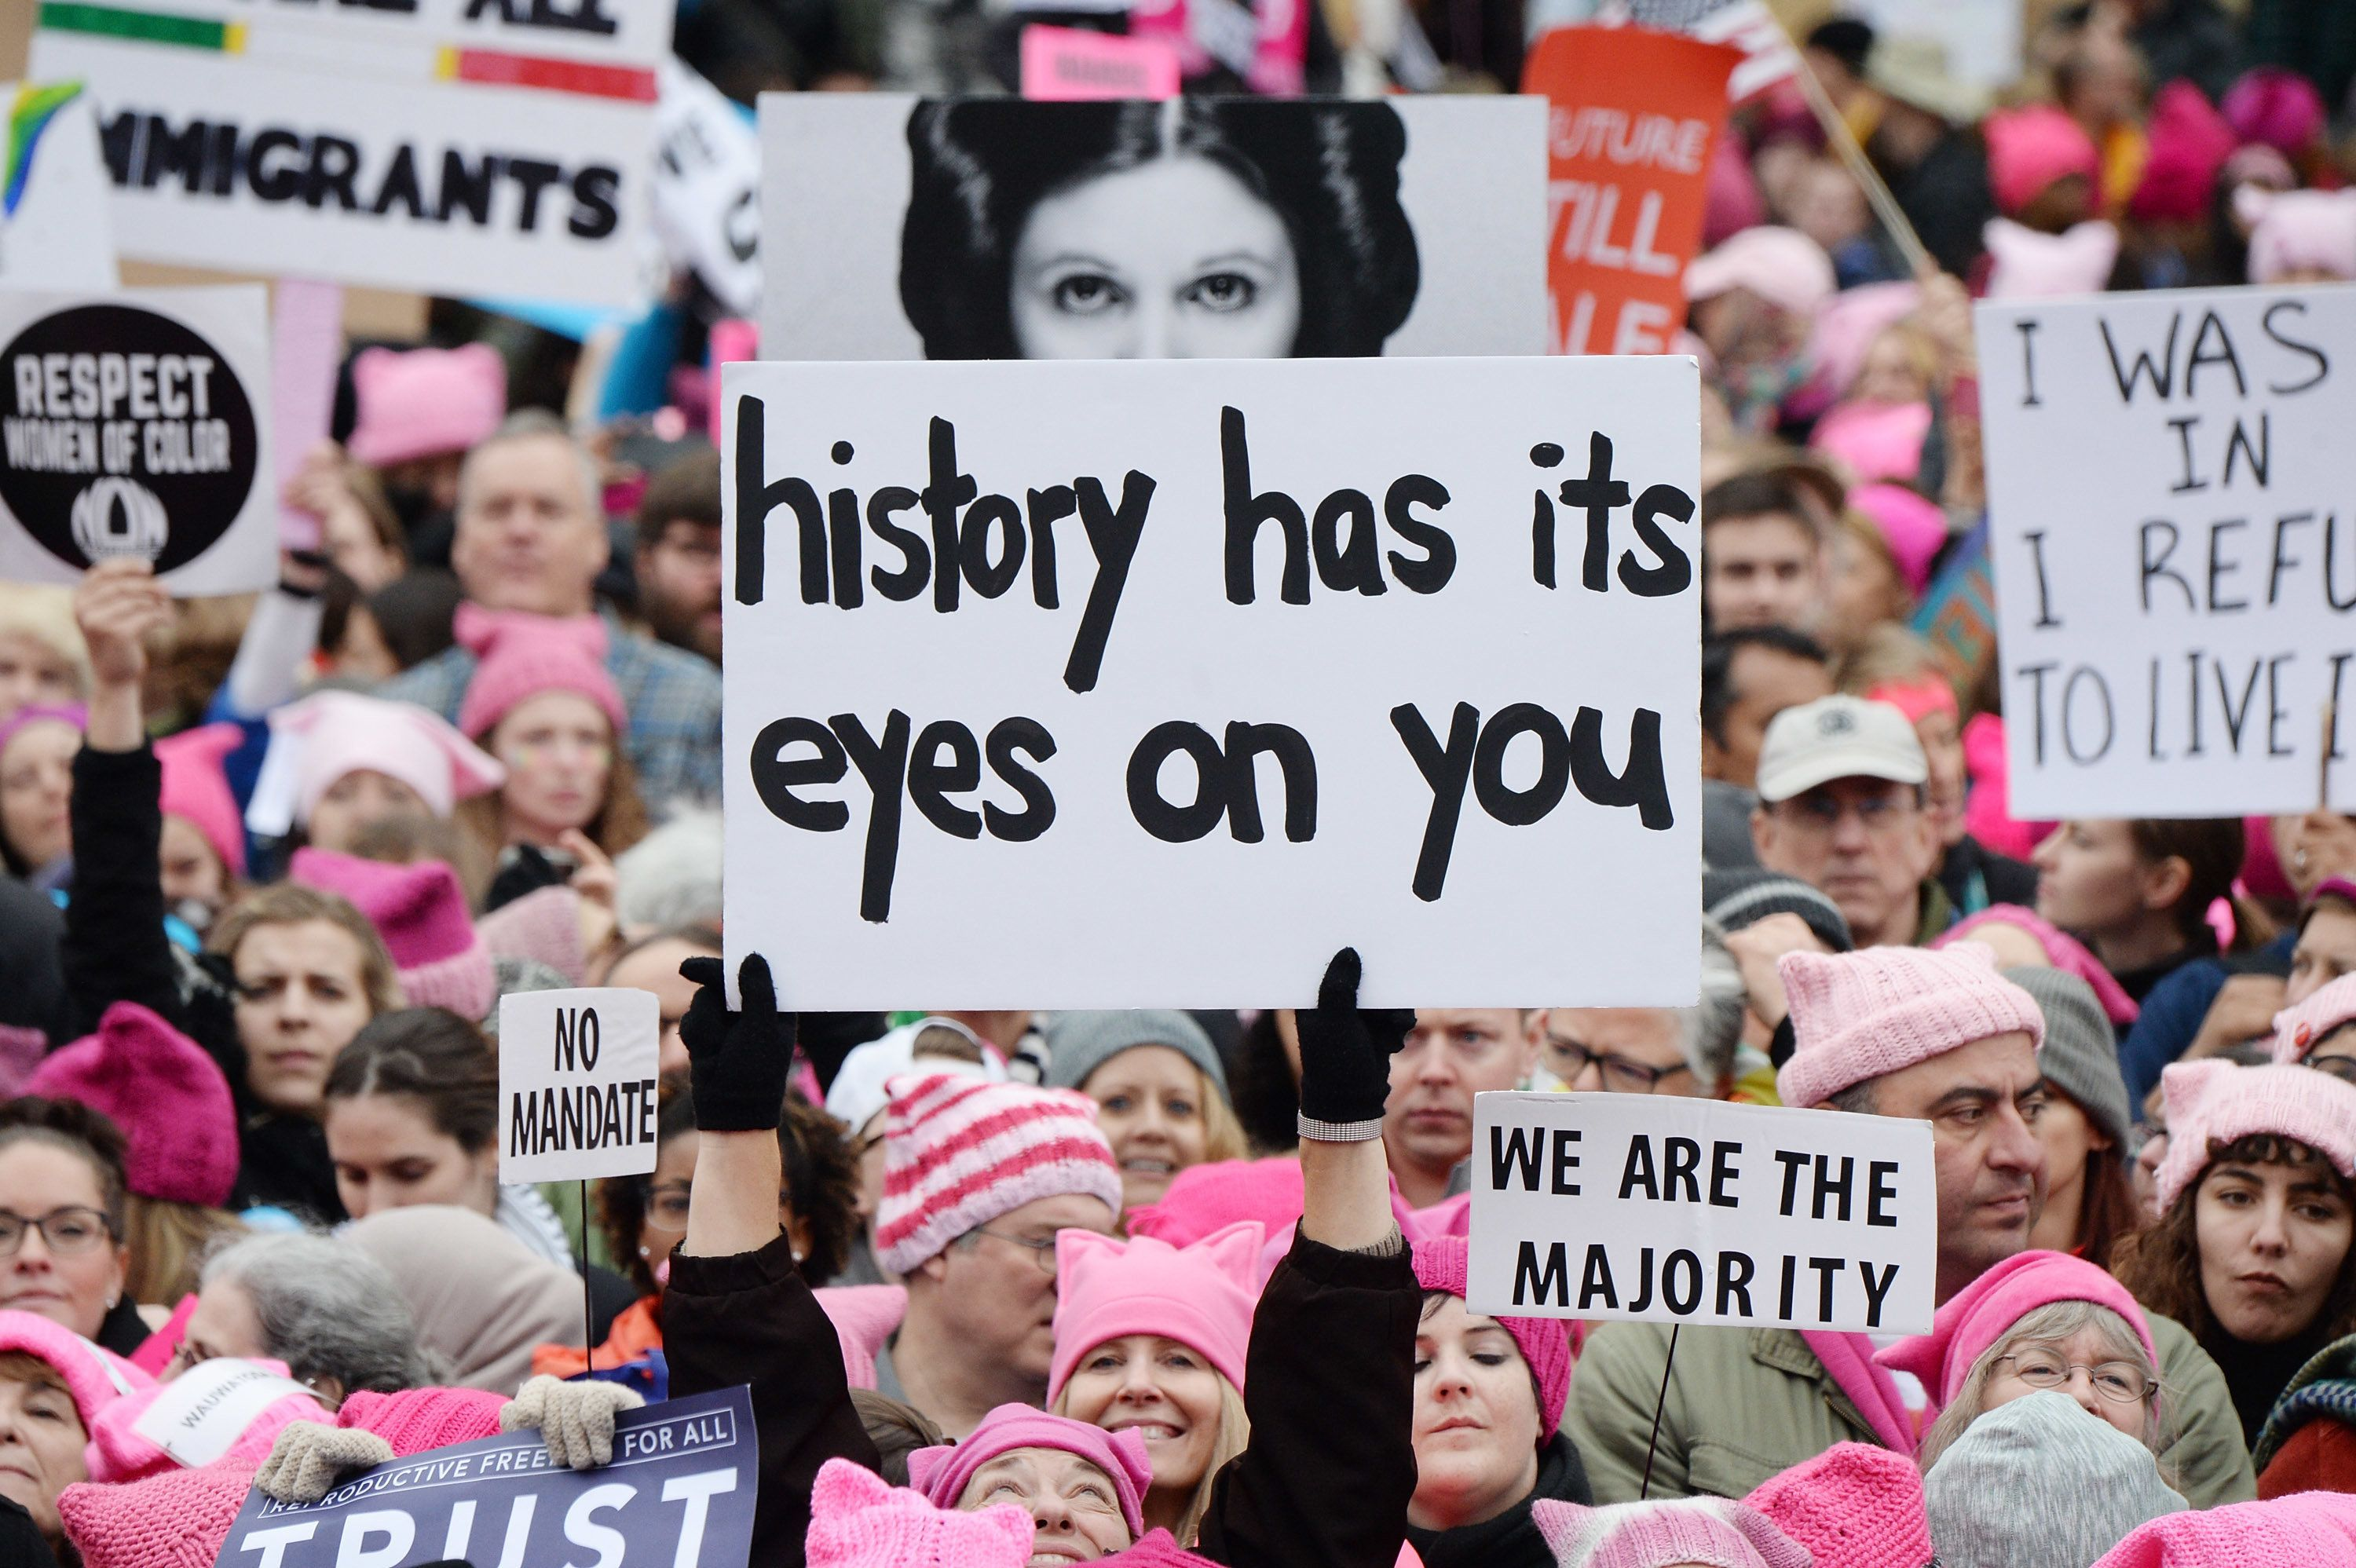 WASHINGTON, DC - JANUARY 21:  Demonstrators attend the rally at the Women's March on Washington on January 21, 2017 in Washington, DC.  (Photo by Kevin Mazur/WireImage)